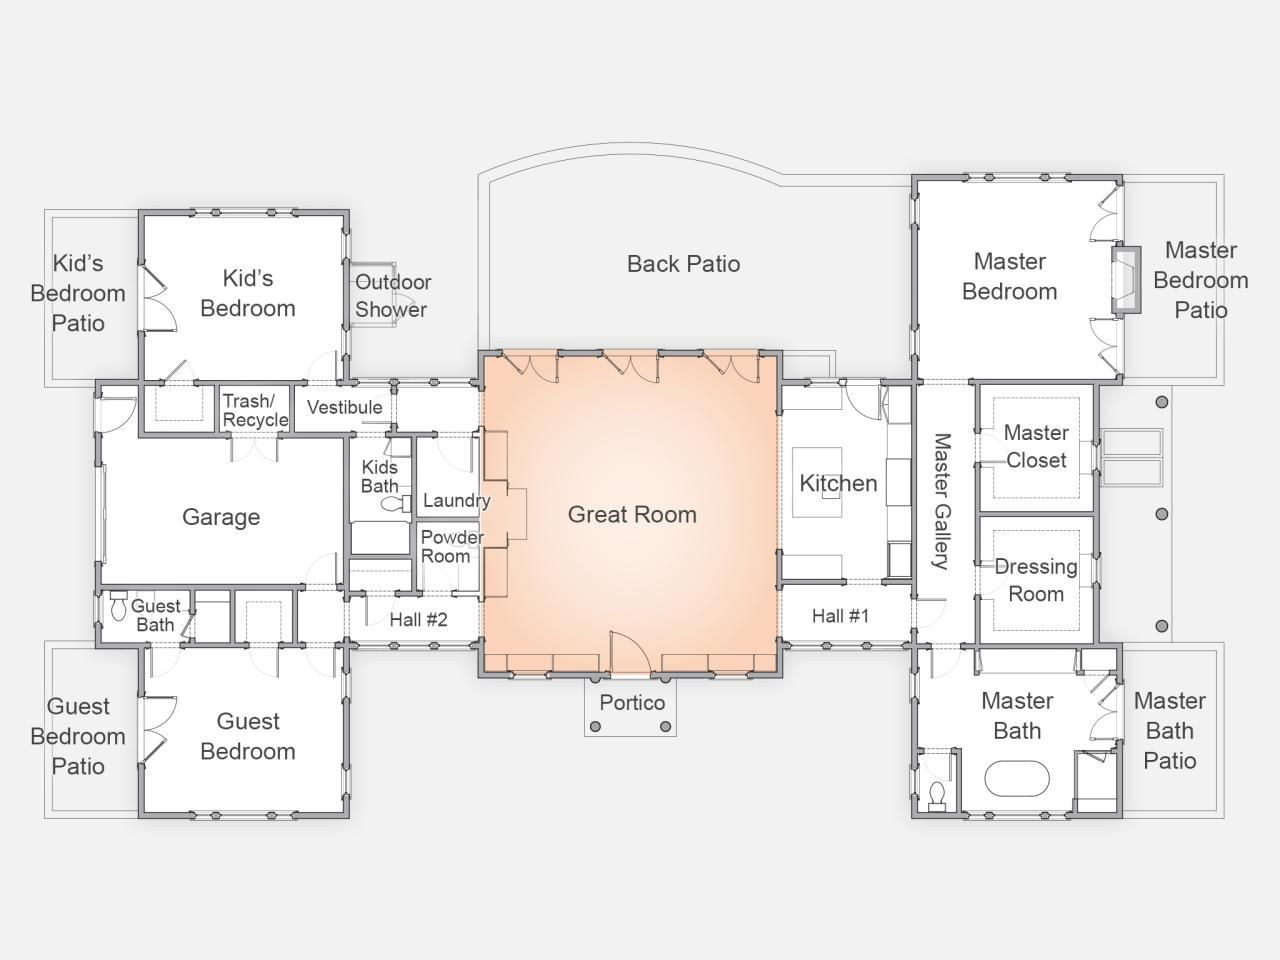 Dream Home 2015 Floor Plan With Images House Floor Plans